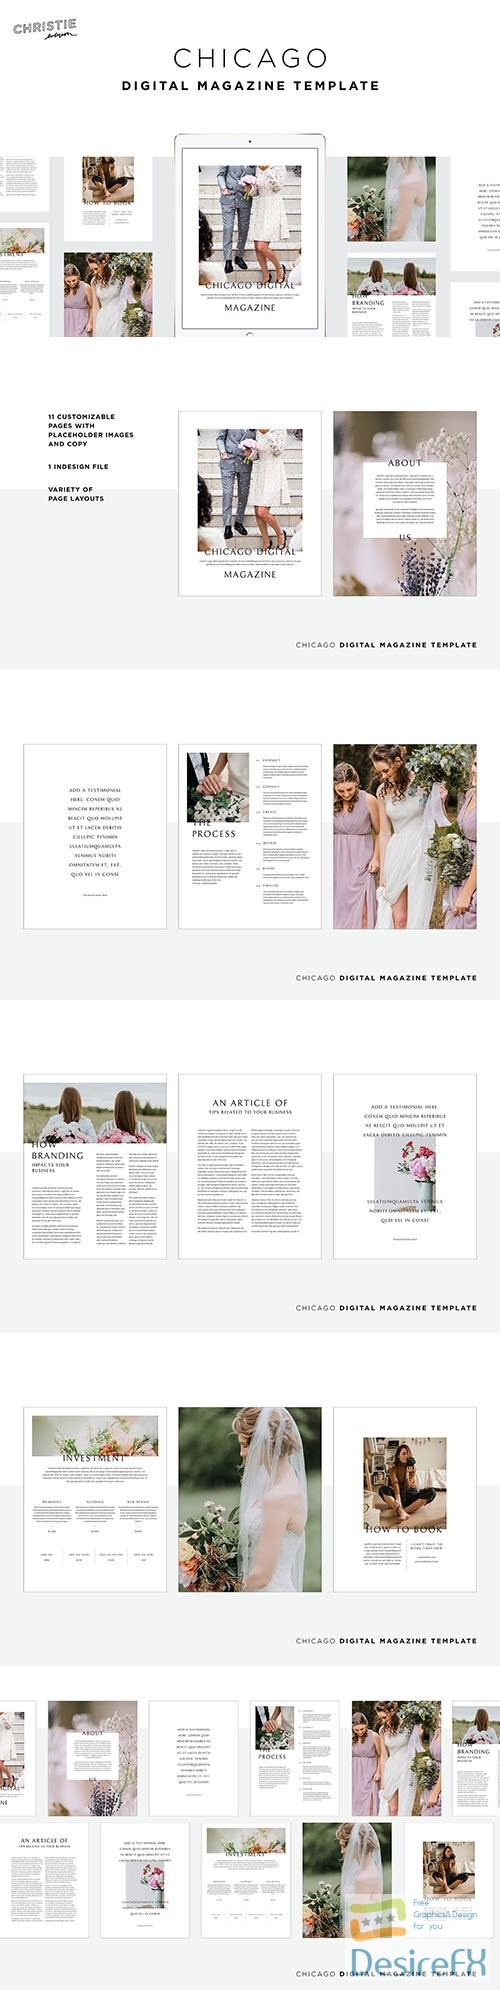 Chicago Digital Magazine Template 3736739